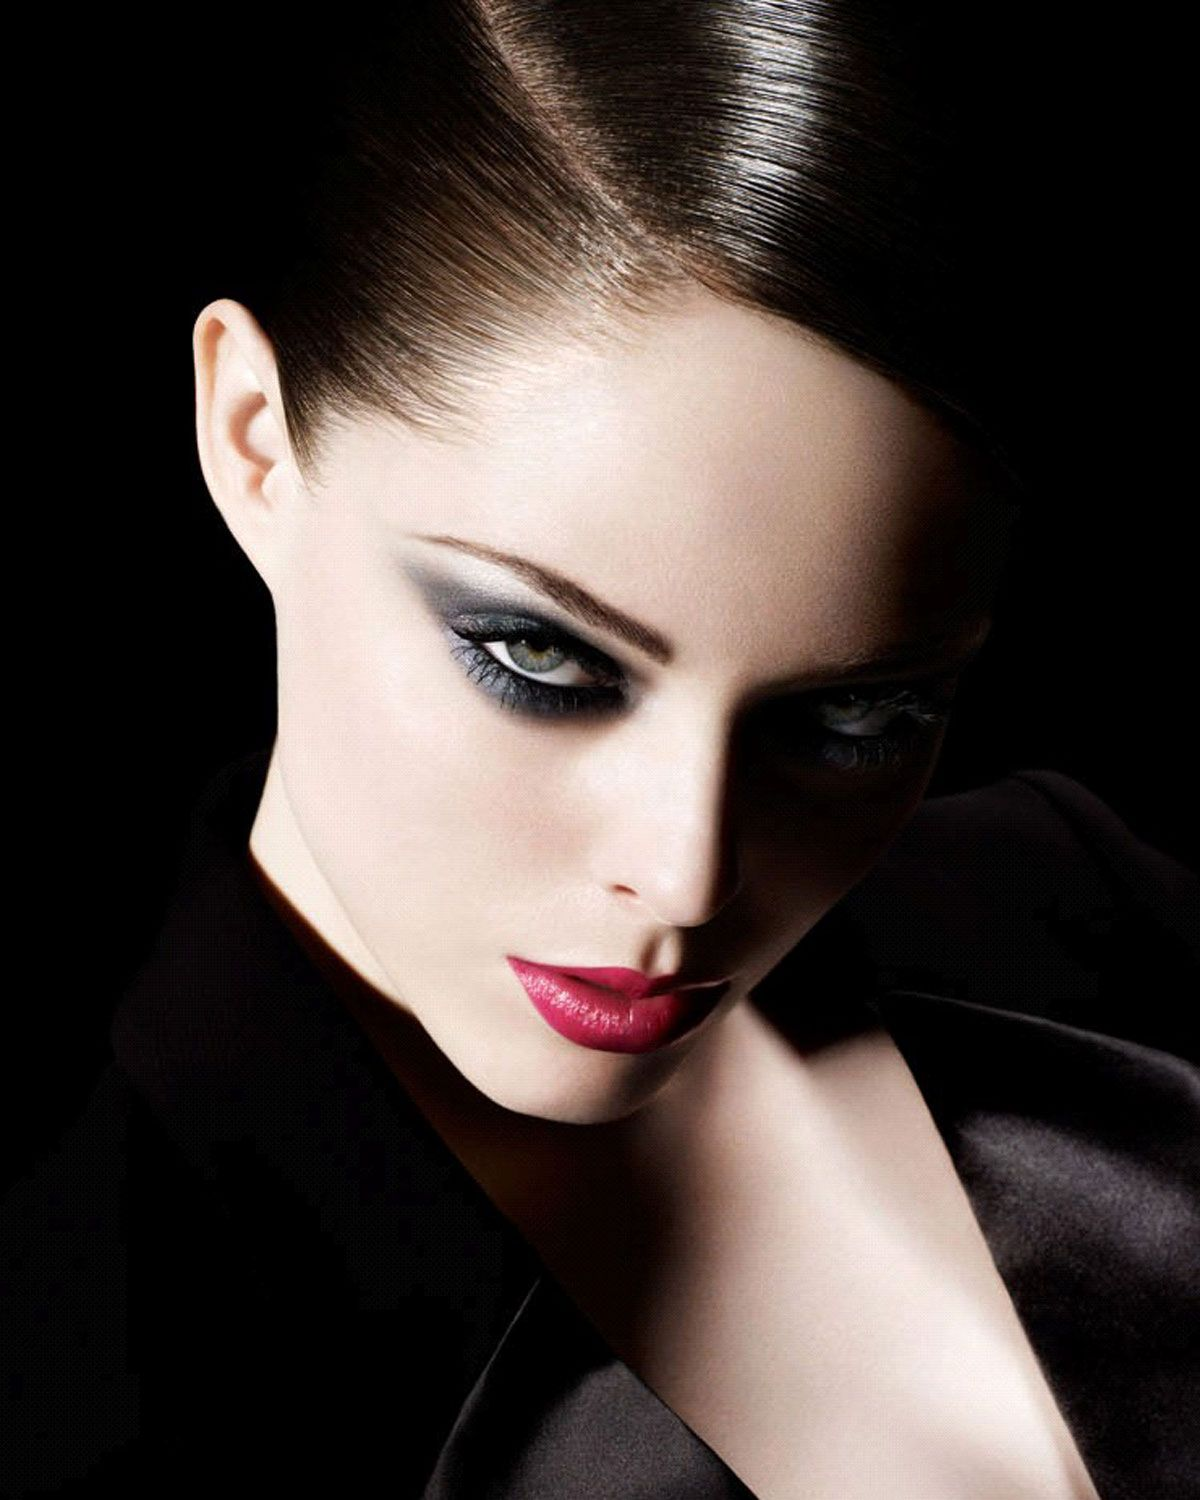 coco rocha biococo rocha poses, coco rocha posing, coco rocha vogue, coco rocha vk, coco rocha wedding, coco rocha listal, coco rocha bellazon, coco rocha gif, coco rocha dancing, coco rocha insta, coco rocha harper's bazaar, coco rocha husband, coco rocha covers, coco rocha elle russia, coco rocha pregnant, coco rocha bio, coco rocha fashion spot, coco rocha interview, coco rocha model agency, coco rocha 100 poses in a minute